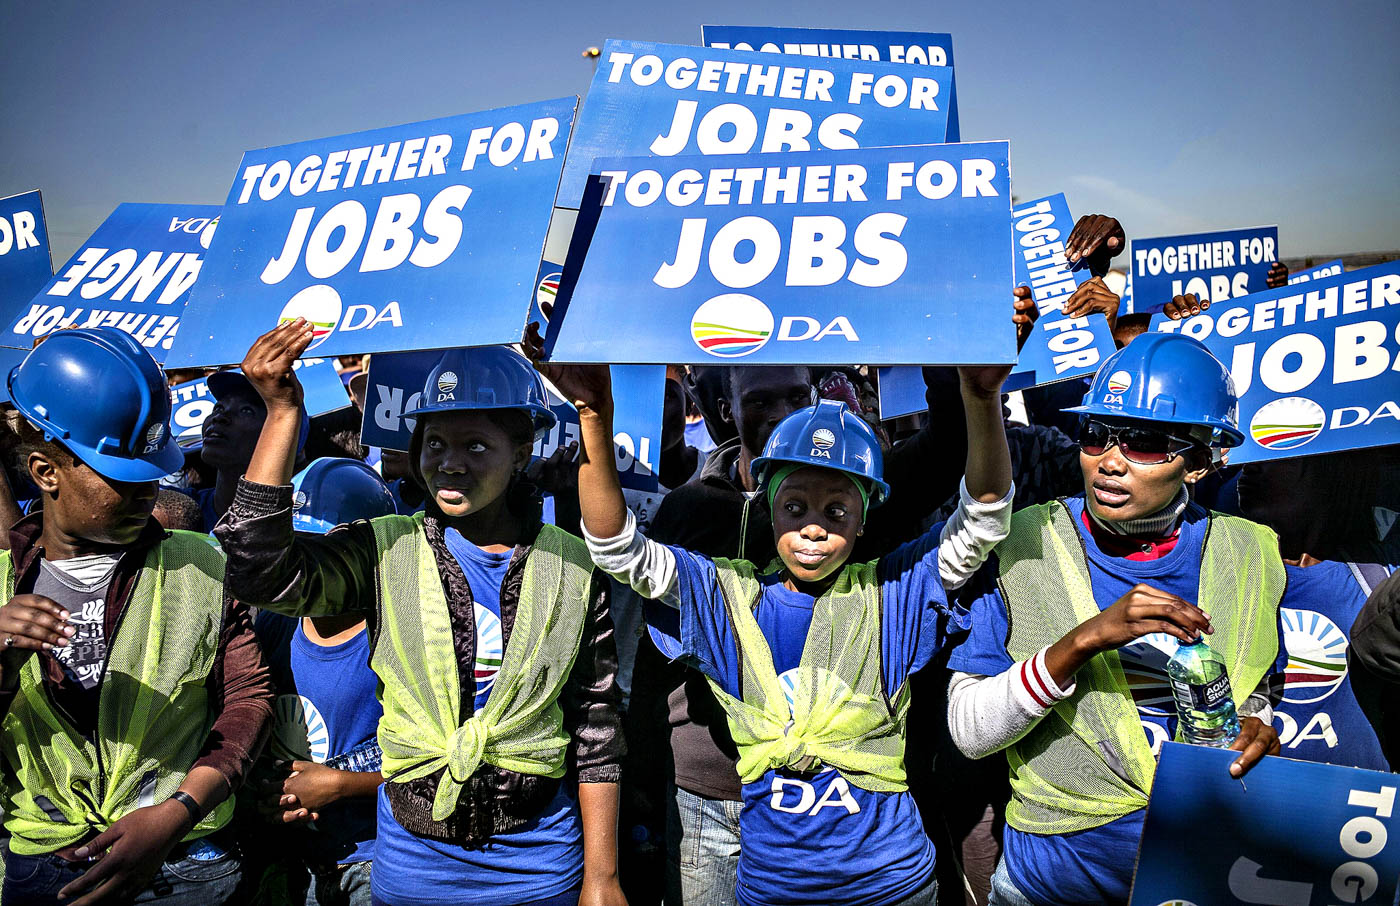 Supporters of the South African oppositi...Supporters of the South African opposition party Democratic Alliance (DA) holds signs as they gather in Mamelodi during an election rally on April 28, 2014. South Africa celebrated on the eve the 20th anniversary of its first ever all-race, democratic election that ended decades of sanctioned racial oppression under the apartheid system. This year's anniversary of democracy coincides with South Africa's fifth democratic election on May 7 where voters will cast ballots in a fiercely fought contest. AFP PHOTO/MARCO LONGARIMARCO LONGARI/AFP/Getty Images